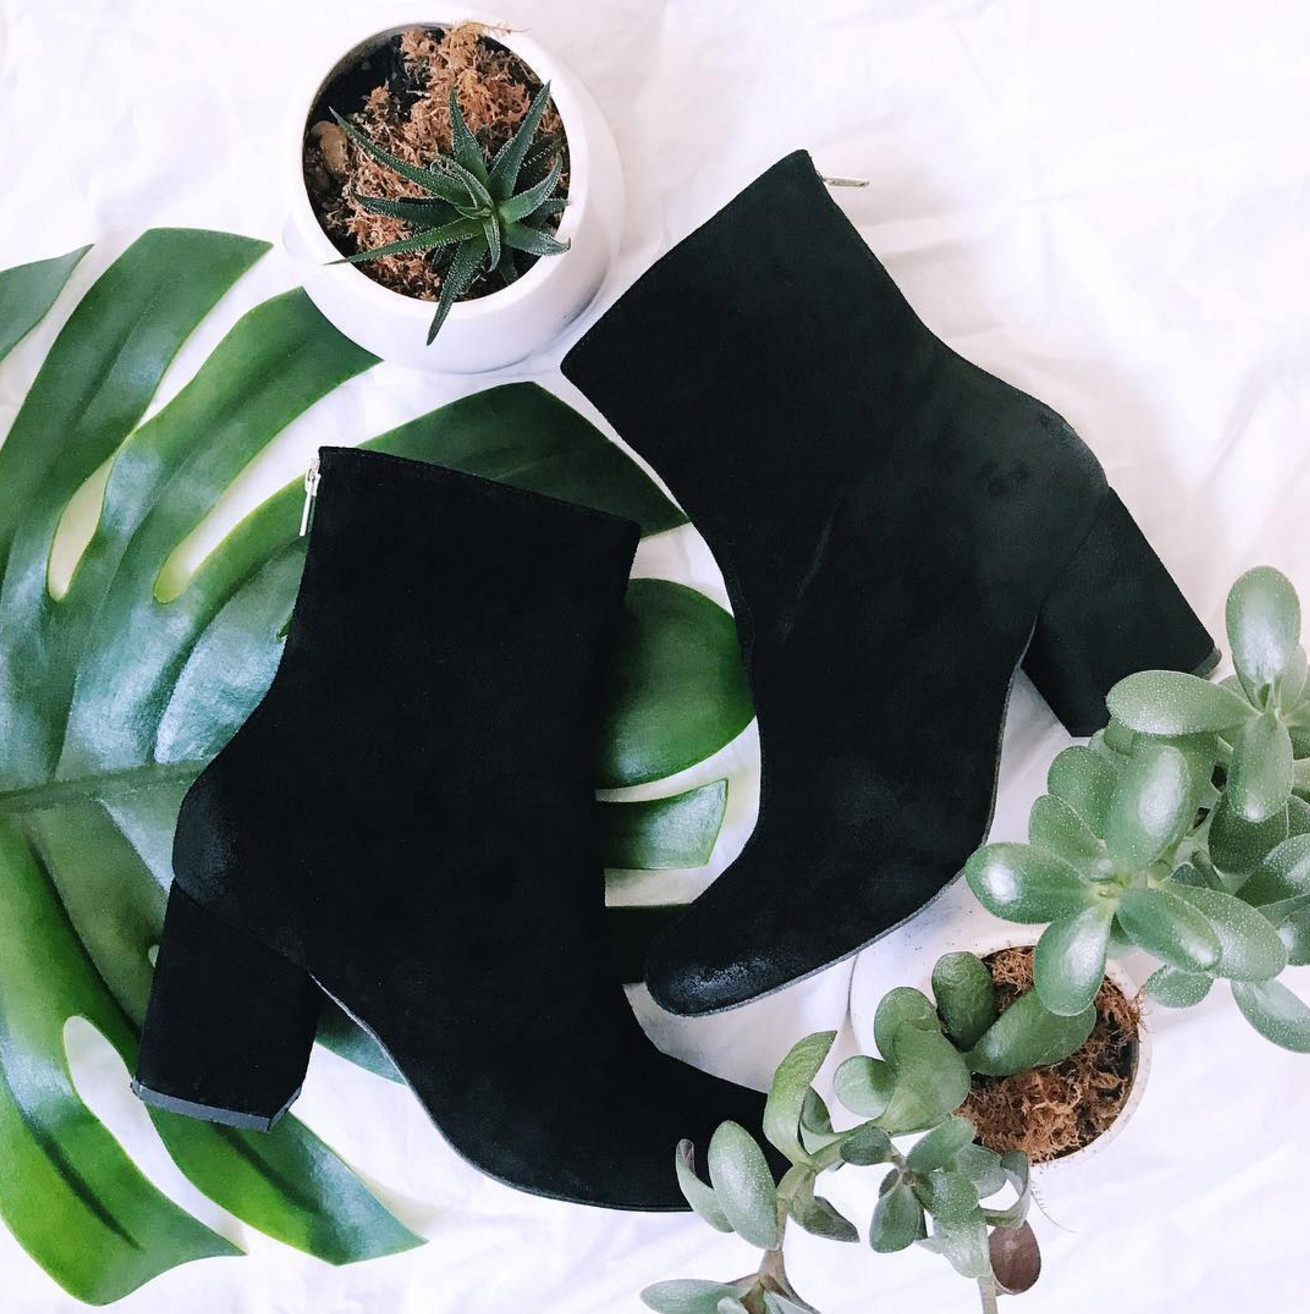 FREE PEOPLE BLACK ANKLE BOOTIES - AVAILABLE IN STORES NOW sku 678-0174 $262